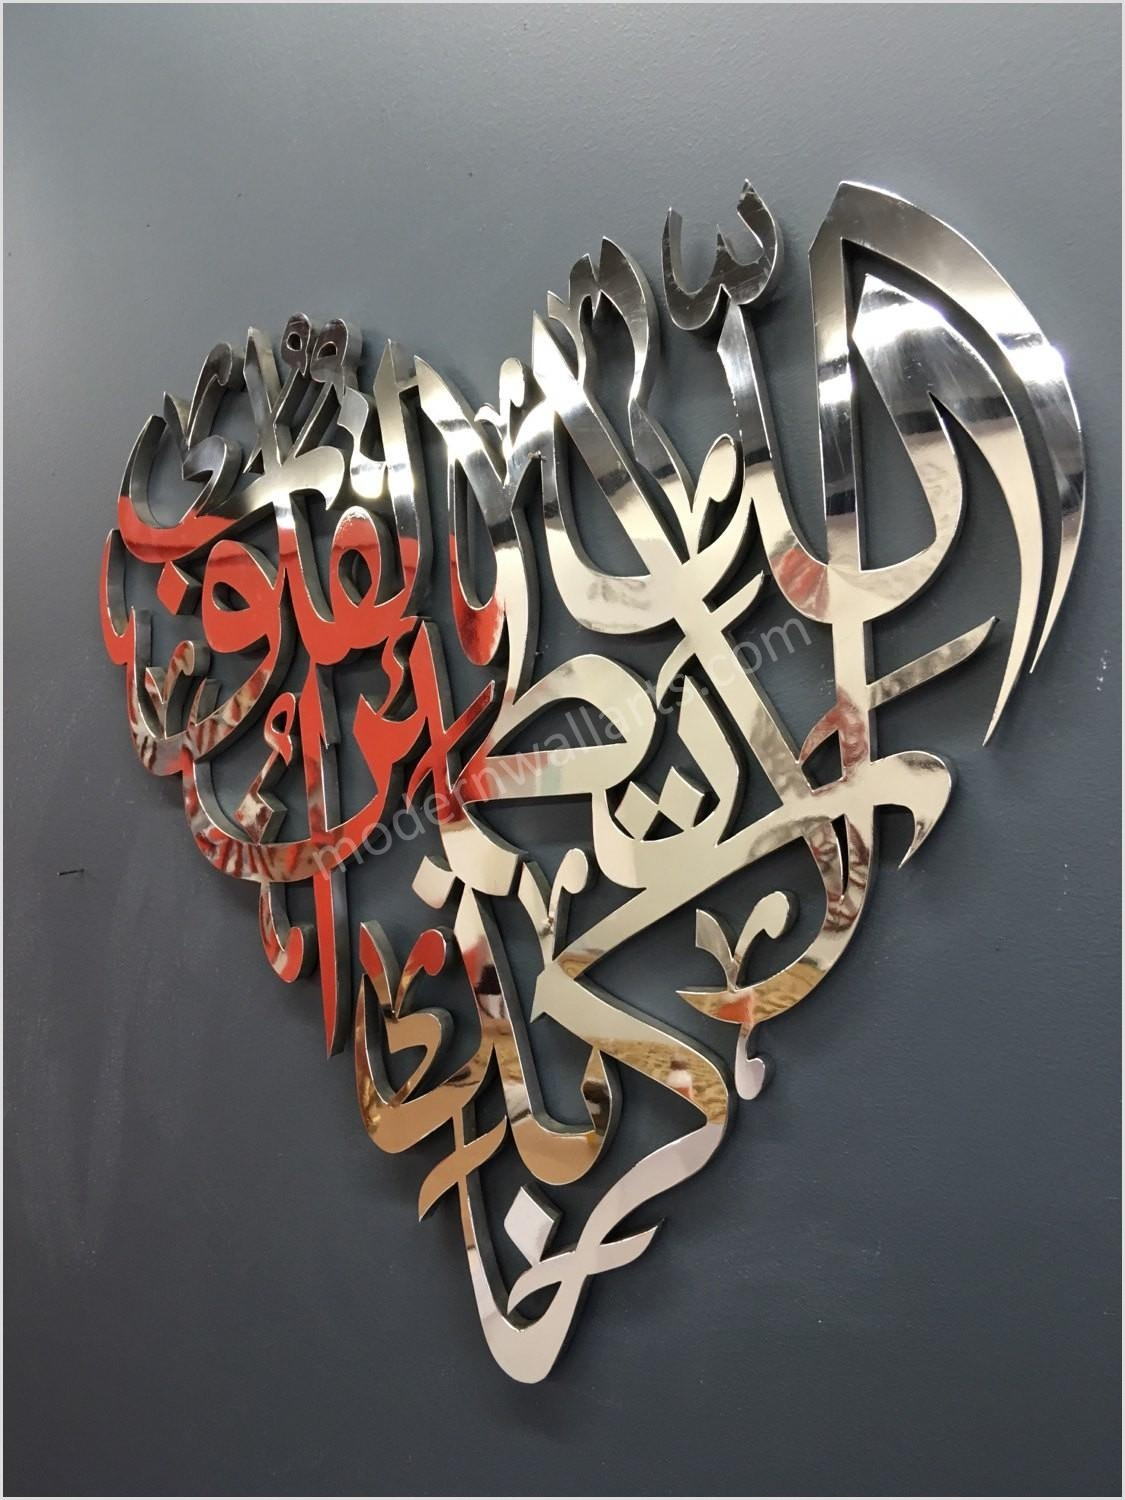 Heart Shaped Metal Wall Art Photos That Really Gorgeous – Desainnow Within Heart Shaped Metal Wall Art (Image 7 of 20)